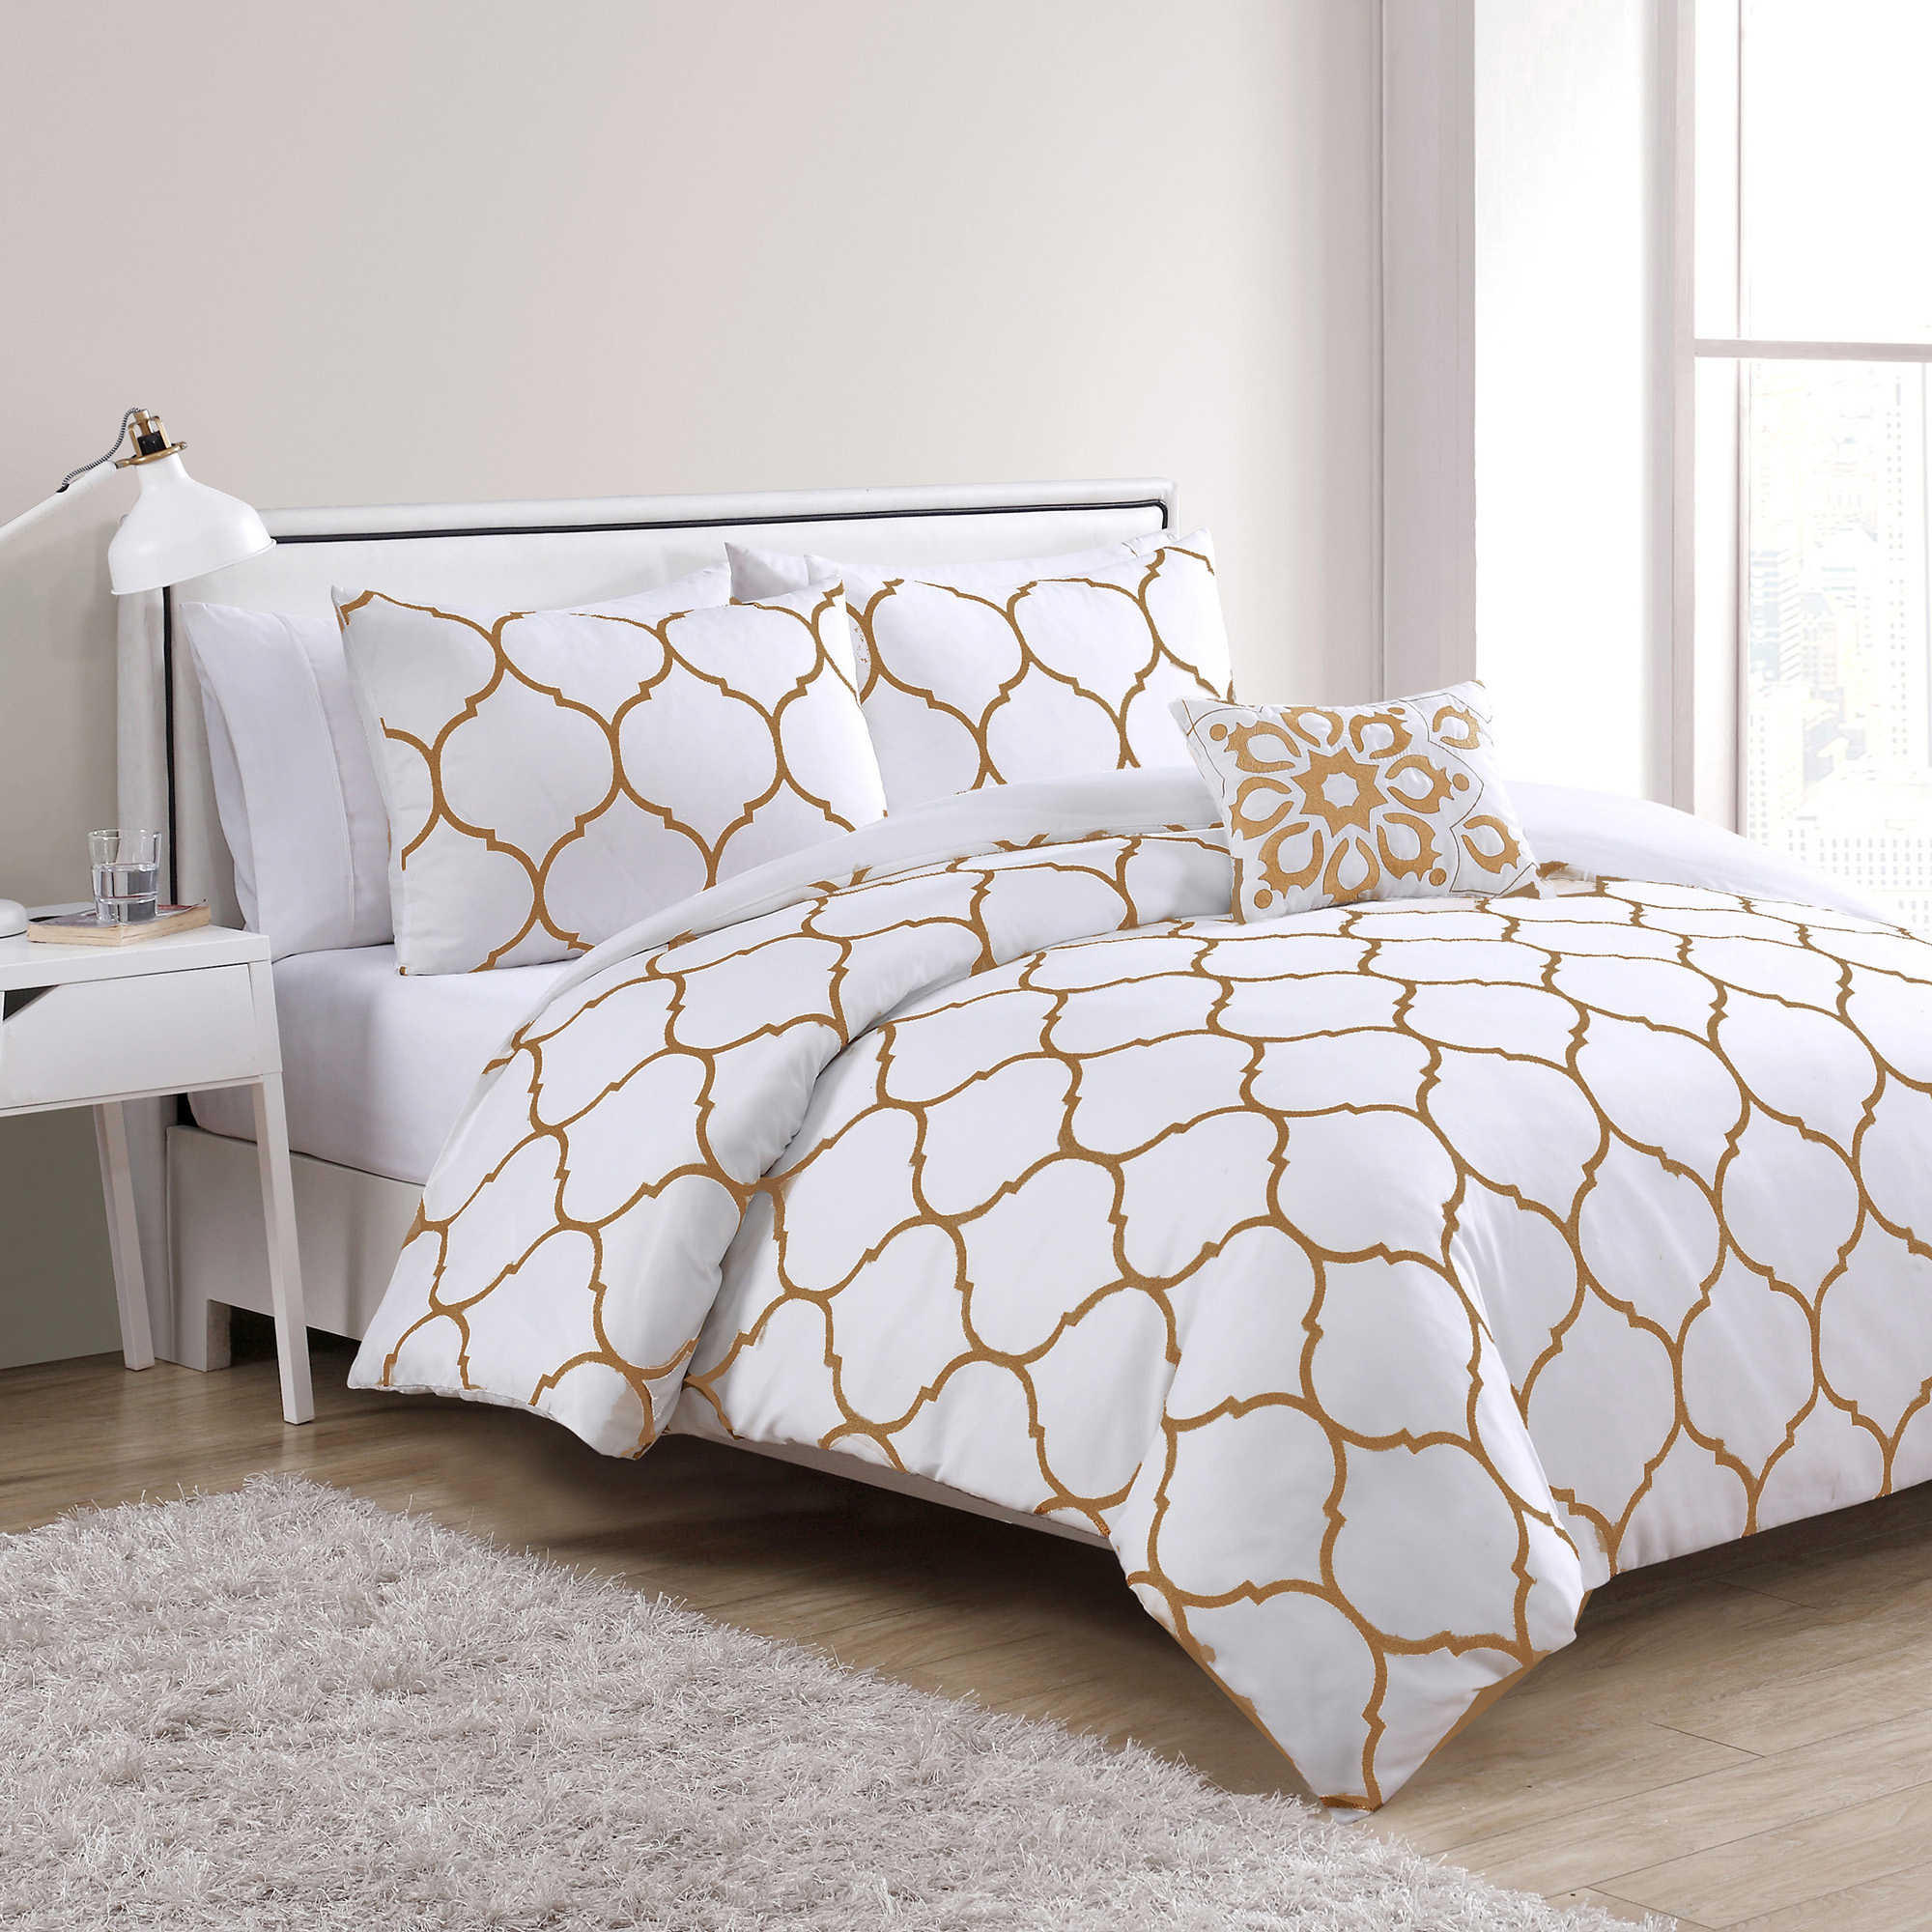 Vcny Ogee 4 Piece Comforter Set In From Bed Bath Amp Beyond